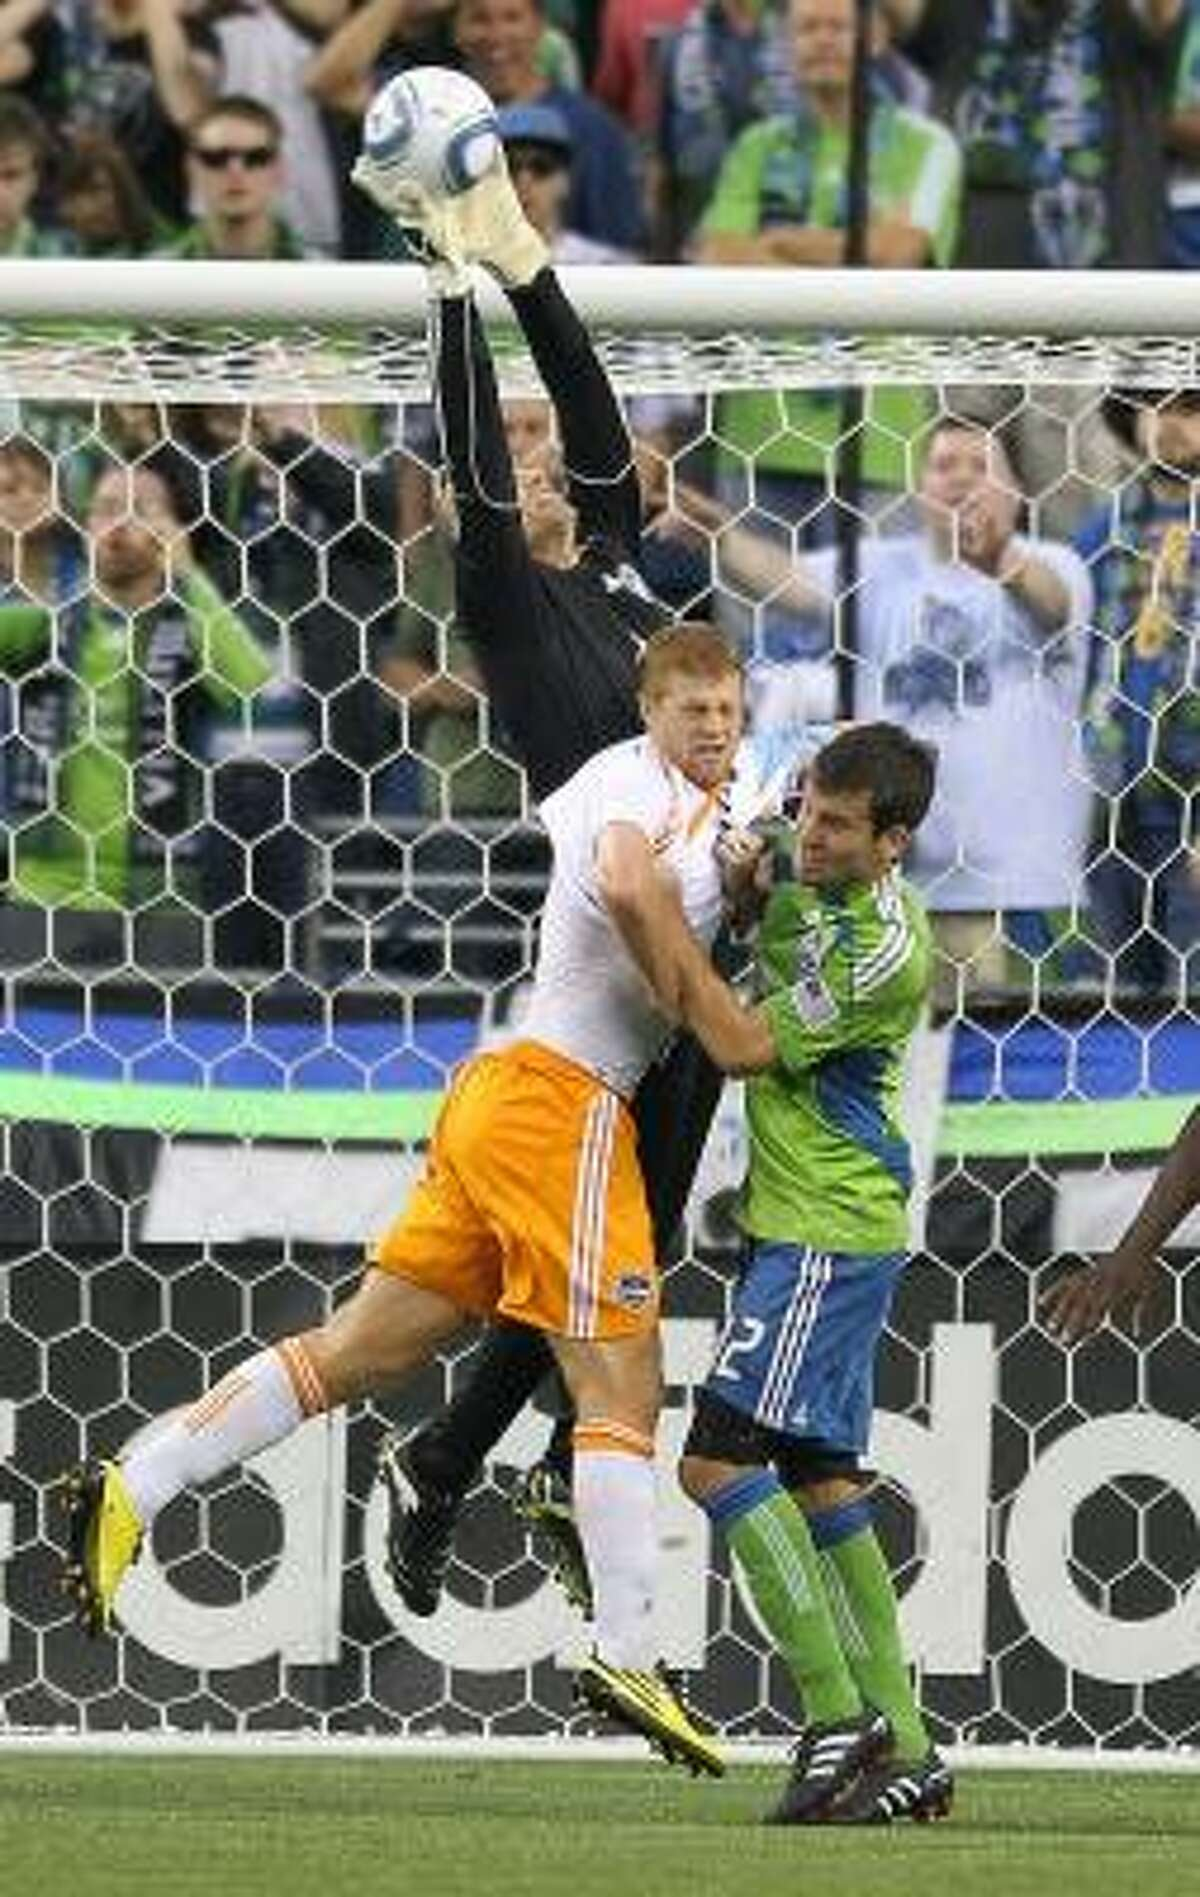 Sounders goalkeeper Kasey Keller blocks a shot in front of Sounders defender Nathan Sturgis and Dynamo defender Andrew Hainault.